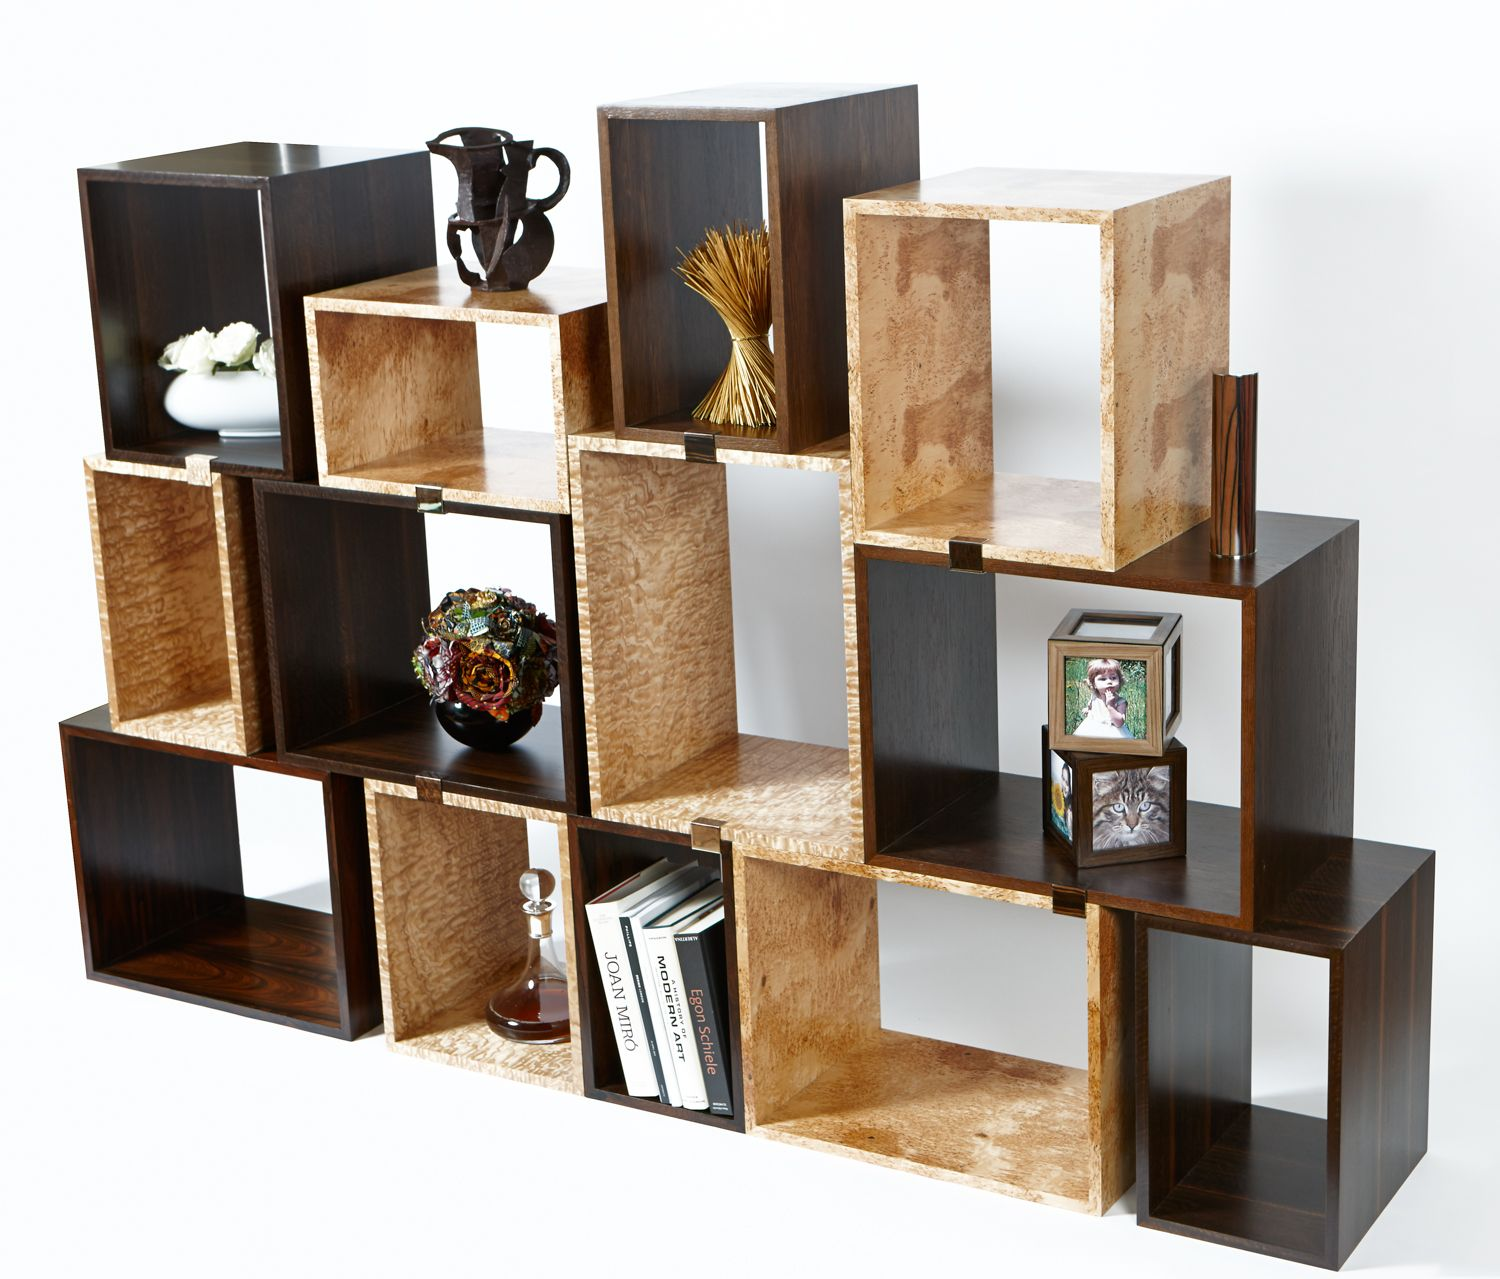 25 Cool Modular Home Office Furniture Designs: Cool Modular Bookshelf Desk Pics Design Inspiration